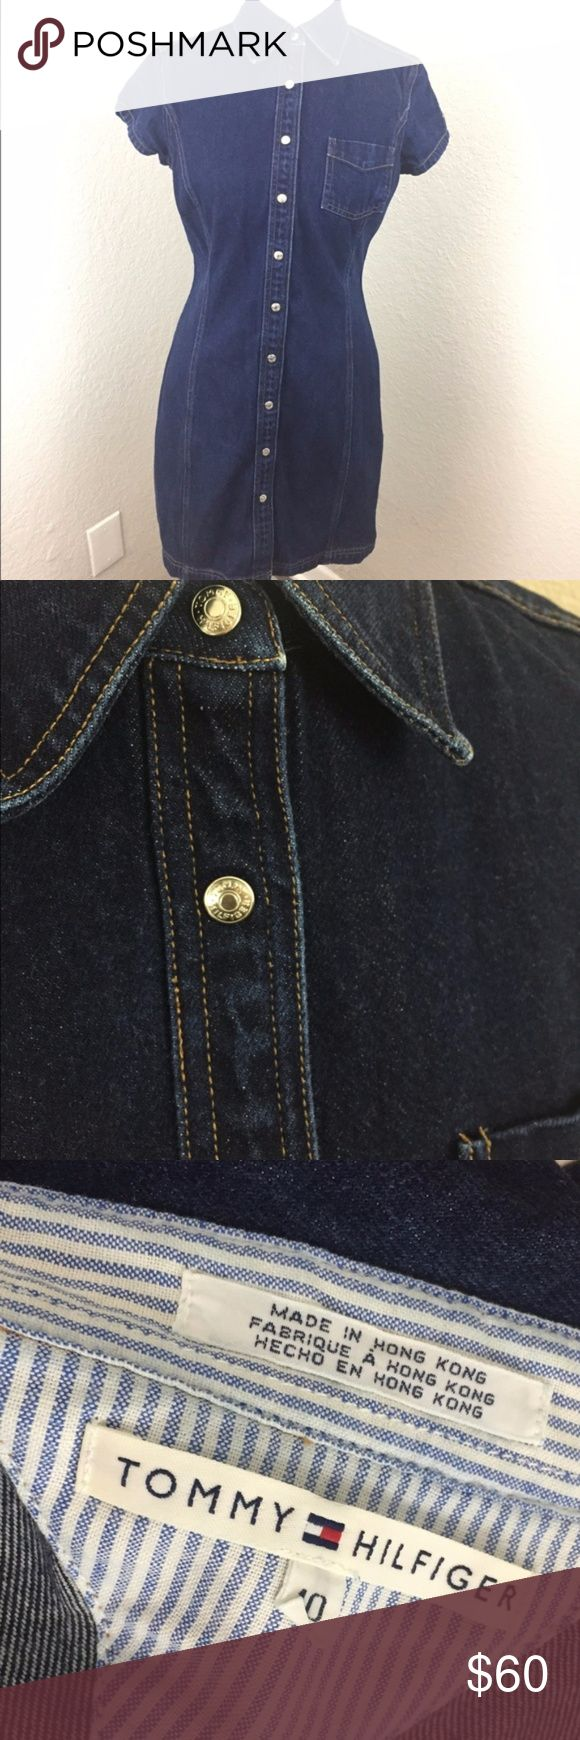 Tommy Hilfiger Denim Collared Dress With Pocket • Push buttons with engraved logo. • Front pocket. • Missing logo panel on sleeve (pictured). • Small stain next to missing logo panel (pictured). • Garment is 100% cotton. Tommy Hilfiger Dresses Mini